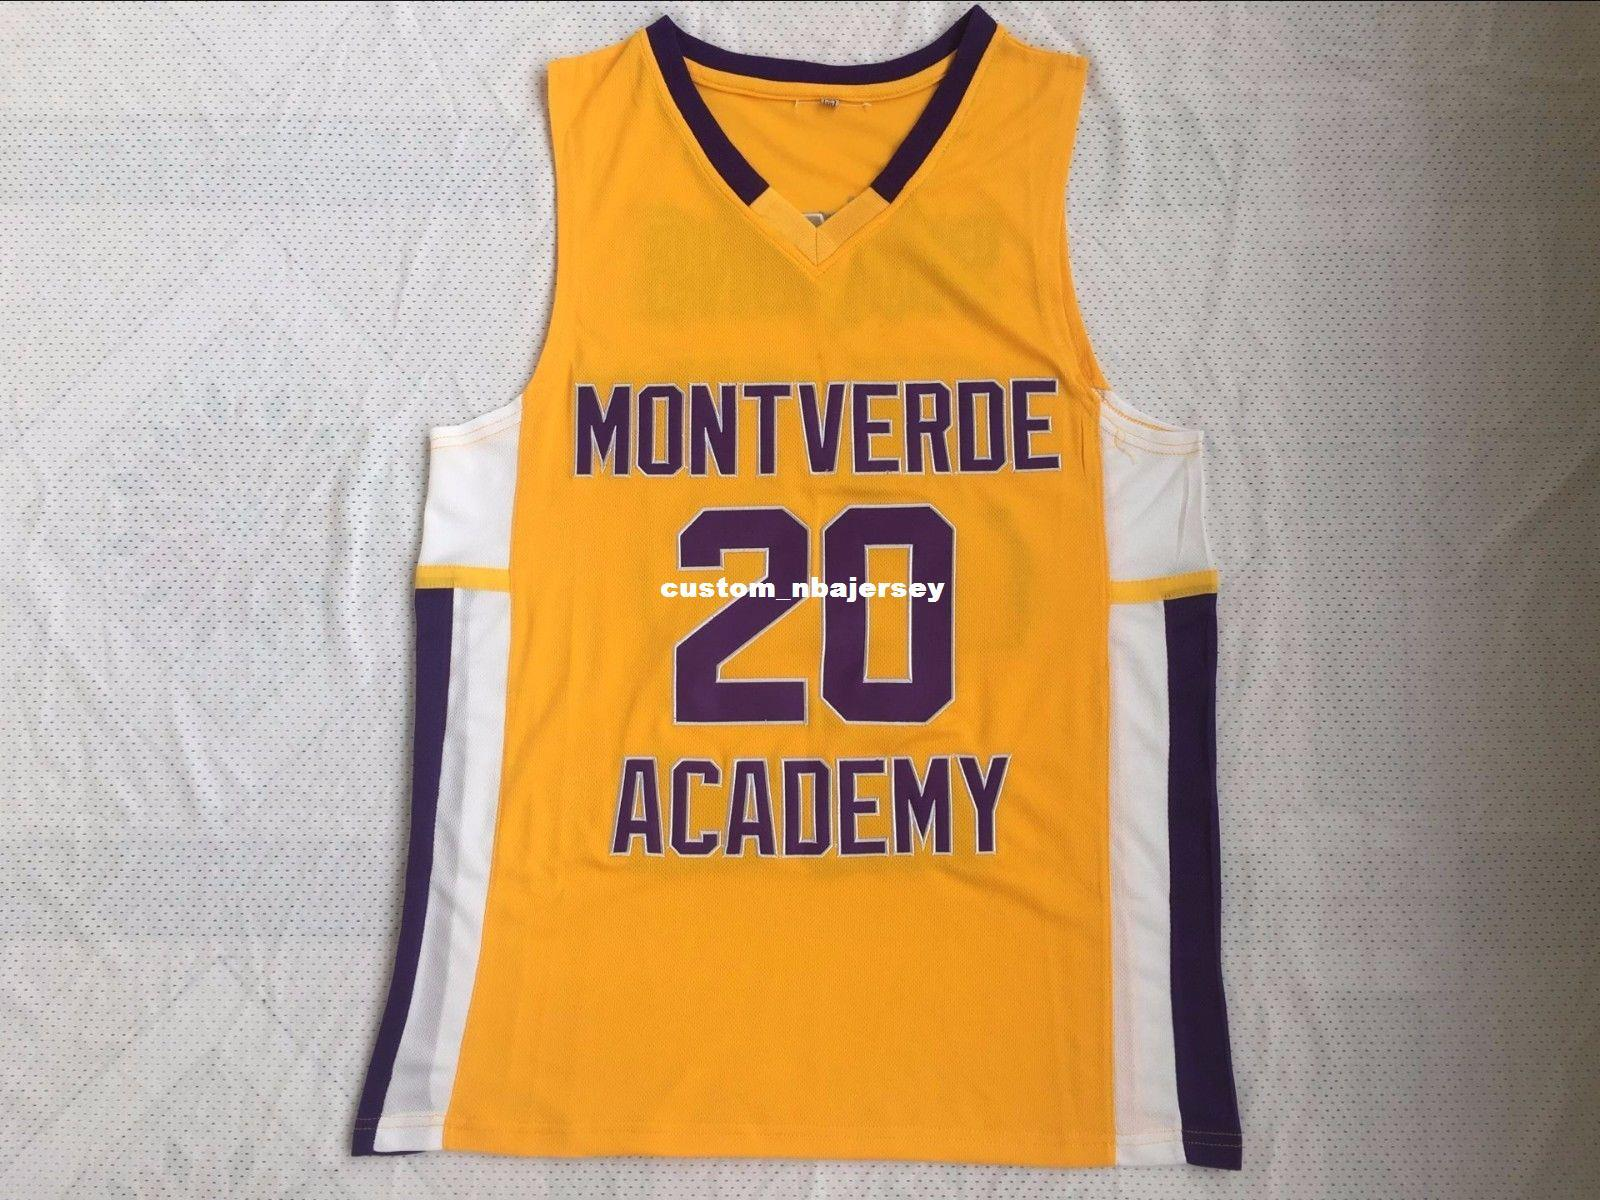 finest selection c3e00 97e1f Cheap custom Ben Simmons #20 Montverde Academy Eagles Jersey Stitched  Stitched Customize any number name MEN WOMEN YOUTH XS-5XL